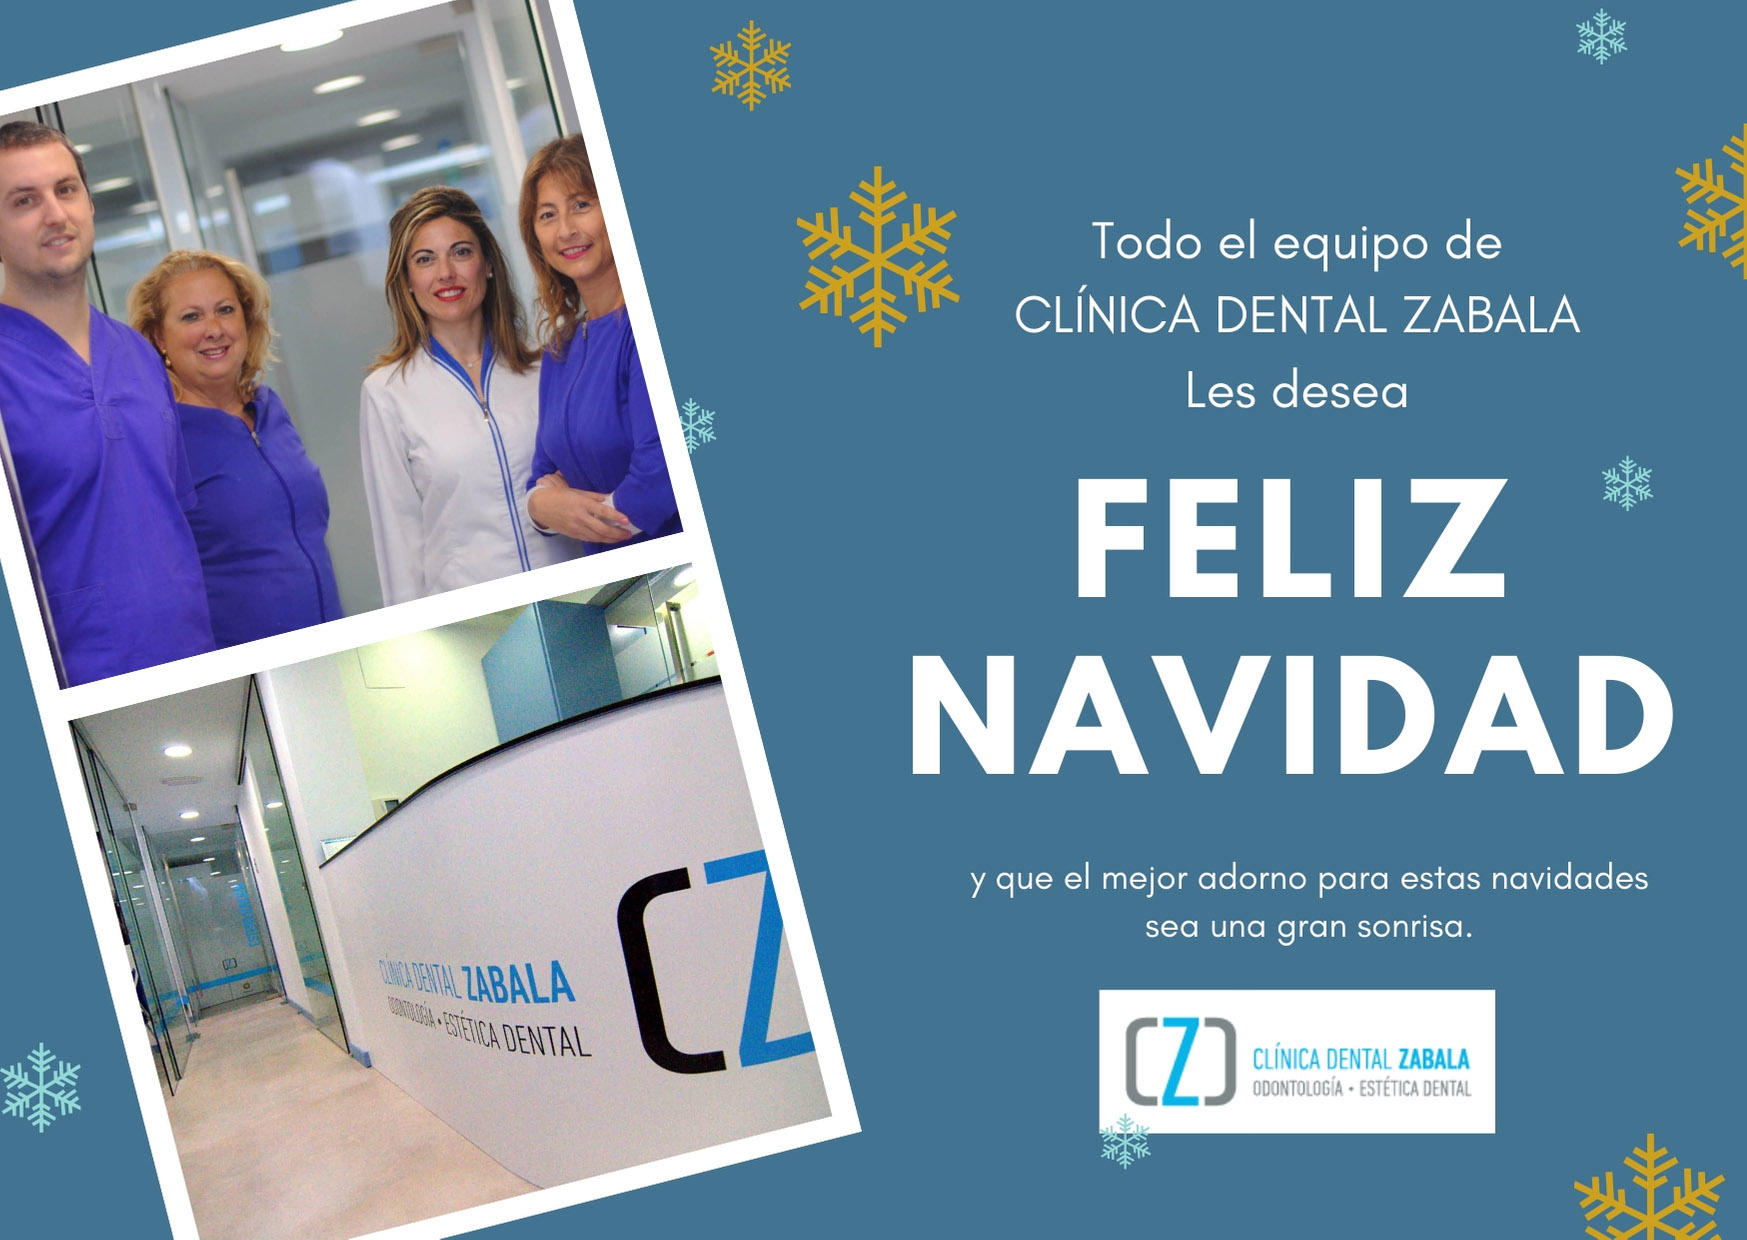 Felicitación Clinica Dental zabala